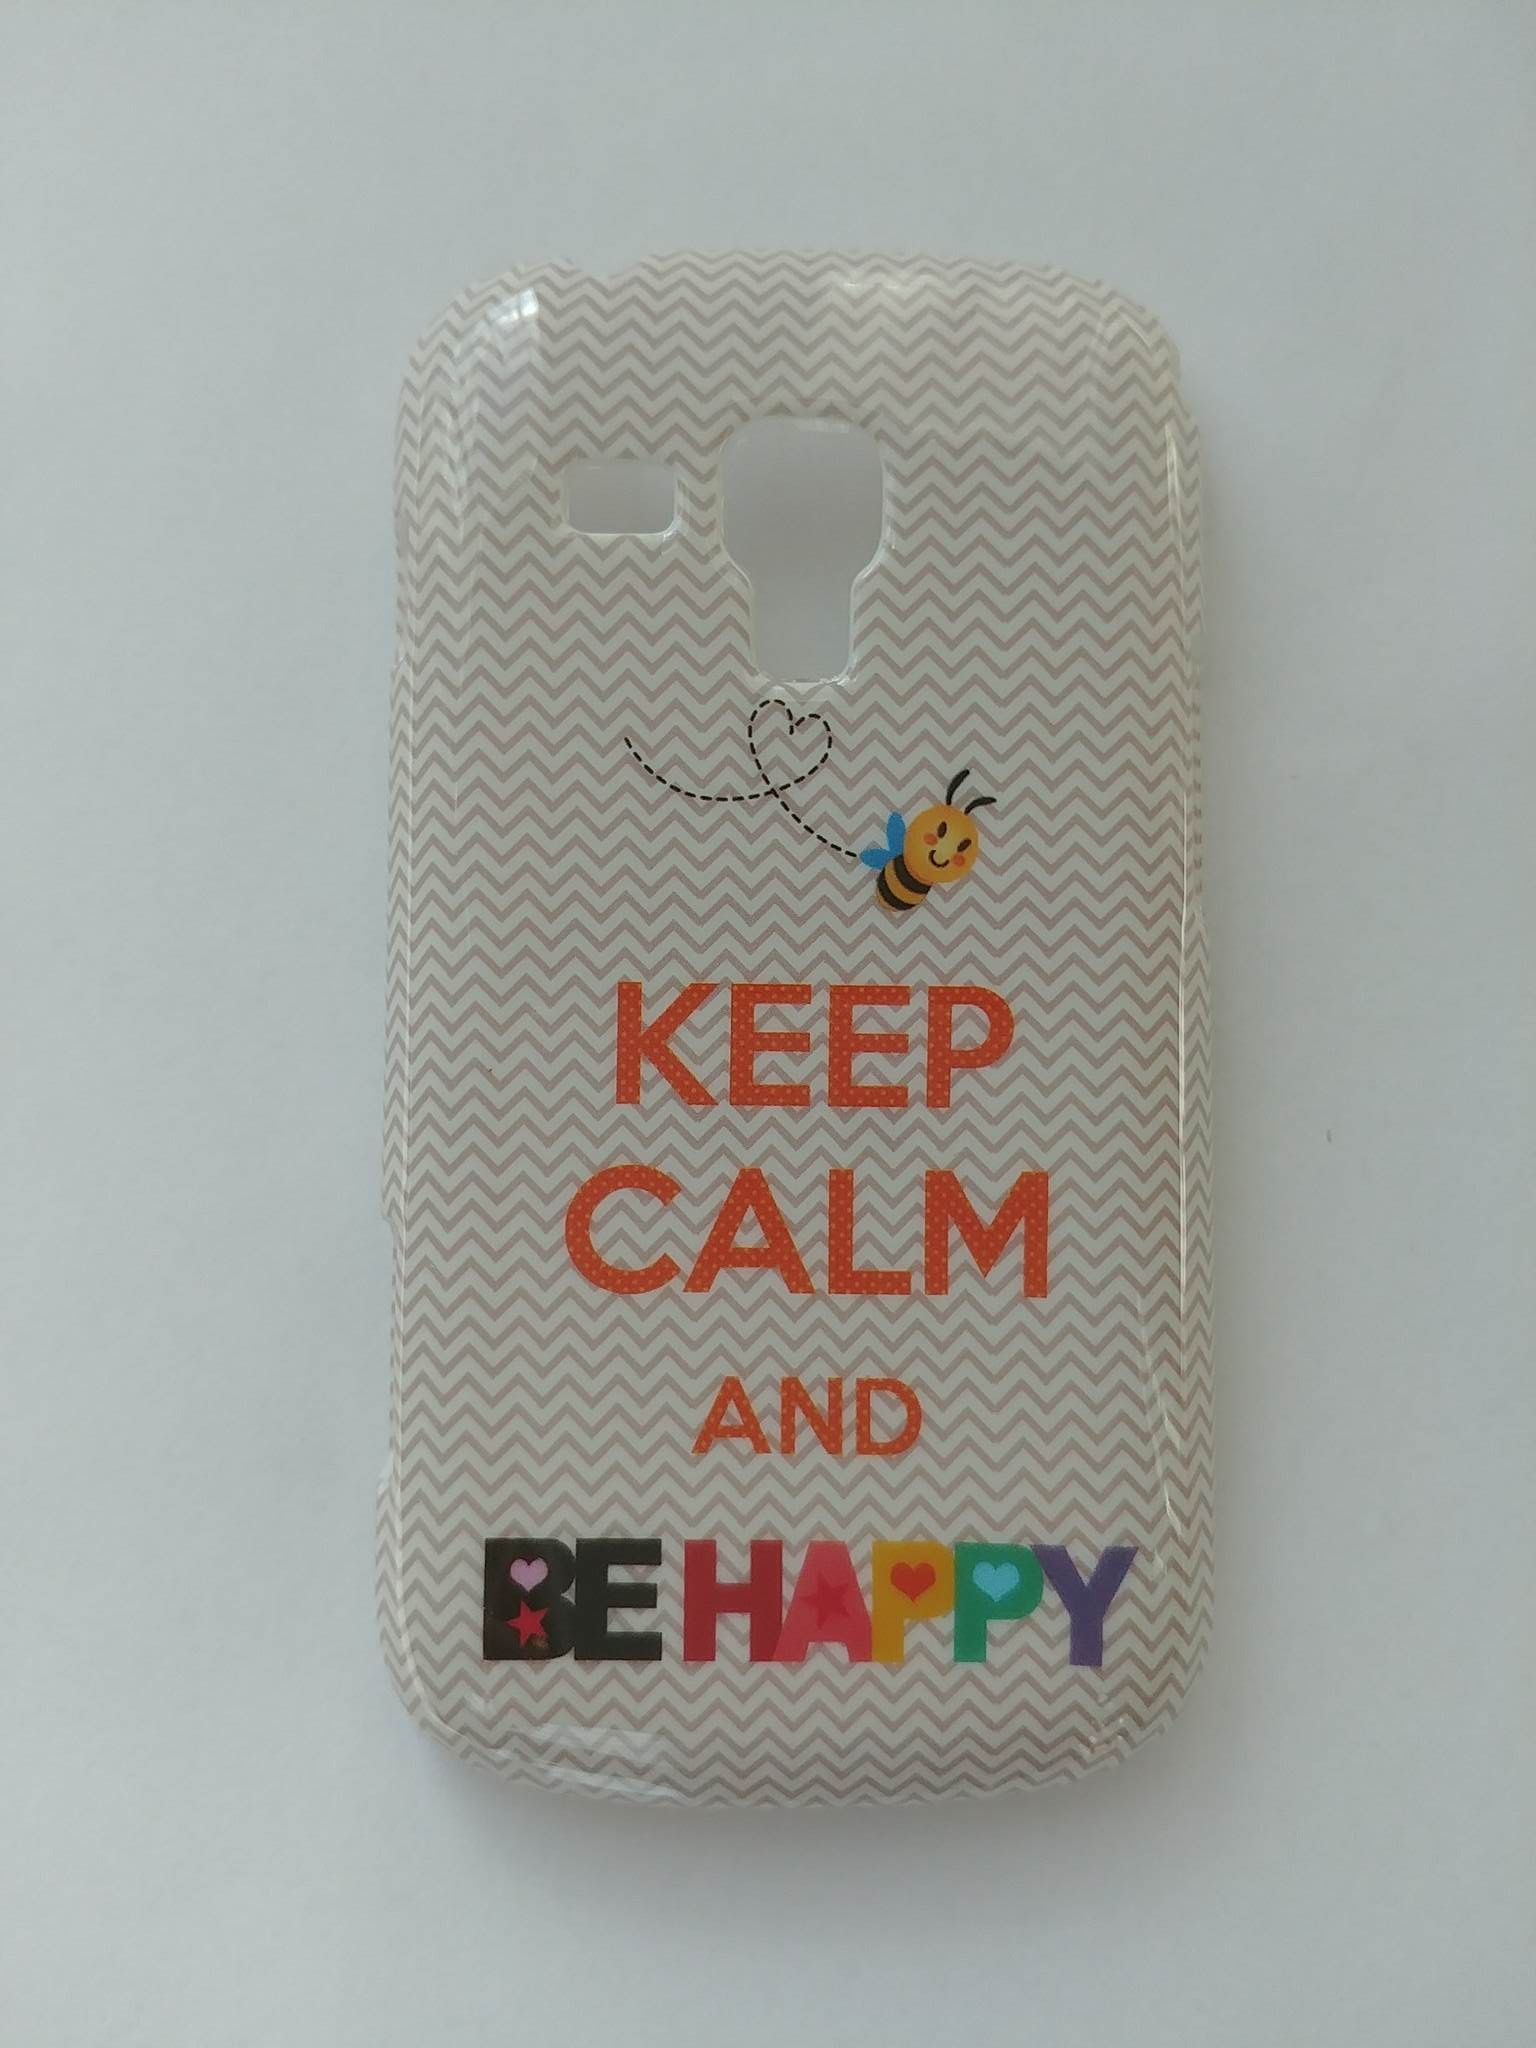 Pouzdro na mobil Samsung Galaxy Trend Plus 4-OK Keep calm